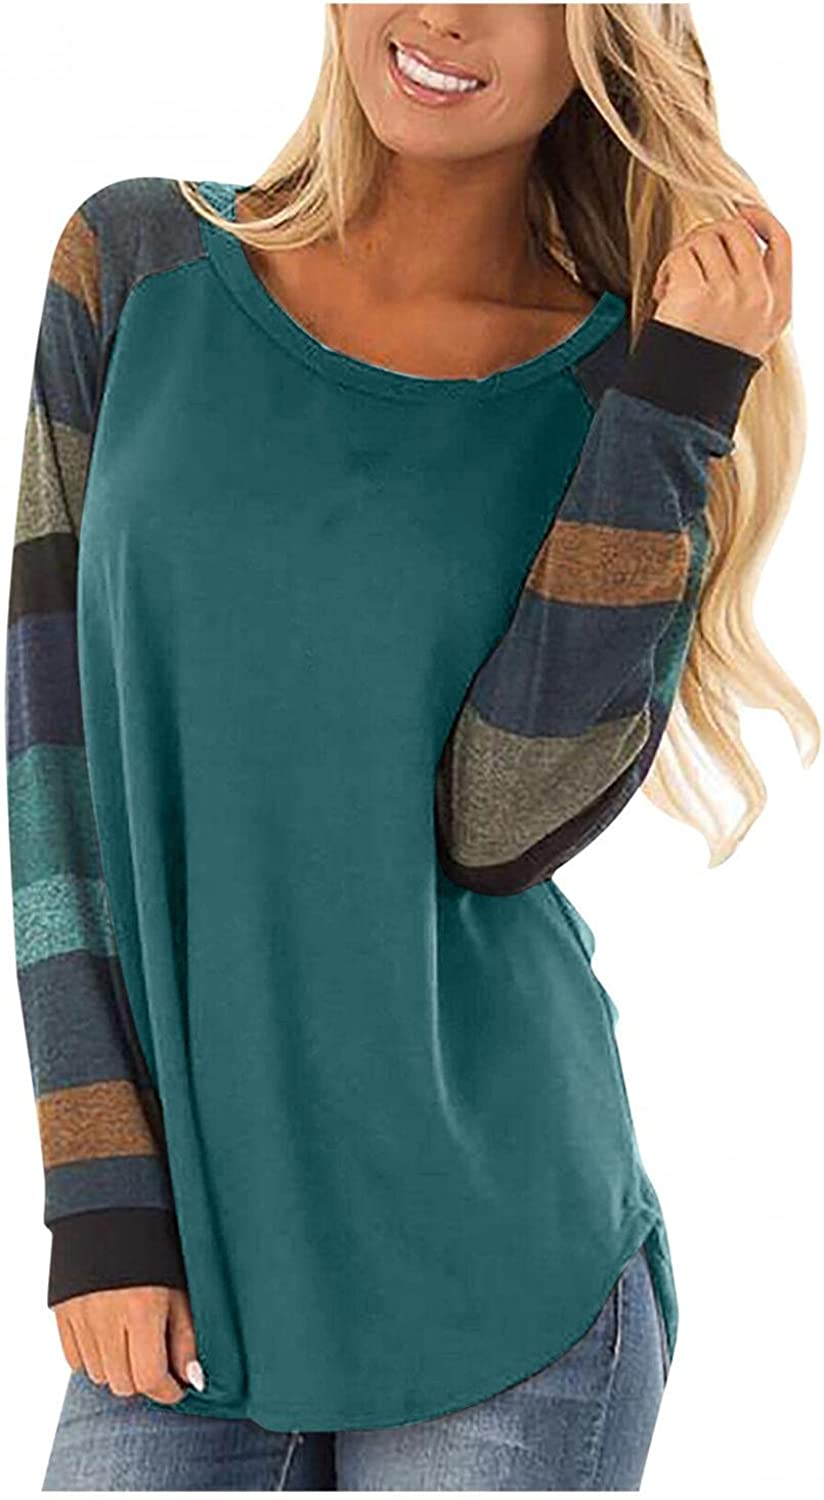 AODONG Long Sleeve Shirts for Women Loose Fit, Womens Color Block Tunic Tops Casual Round Neck Plus Size Shirt Blouses